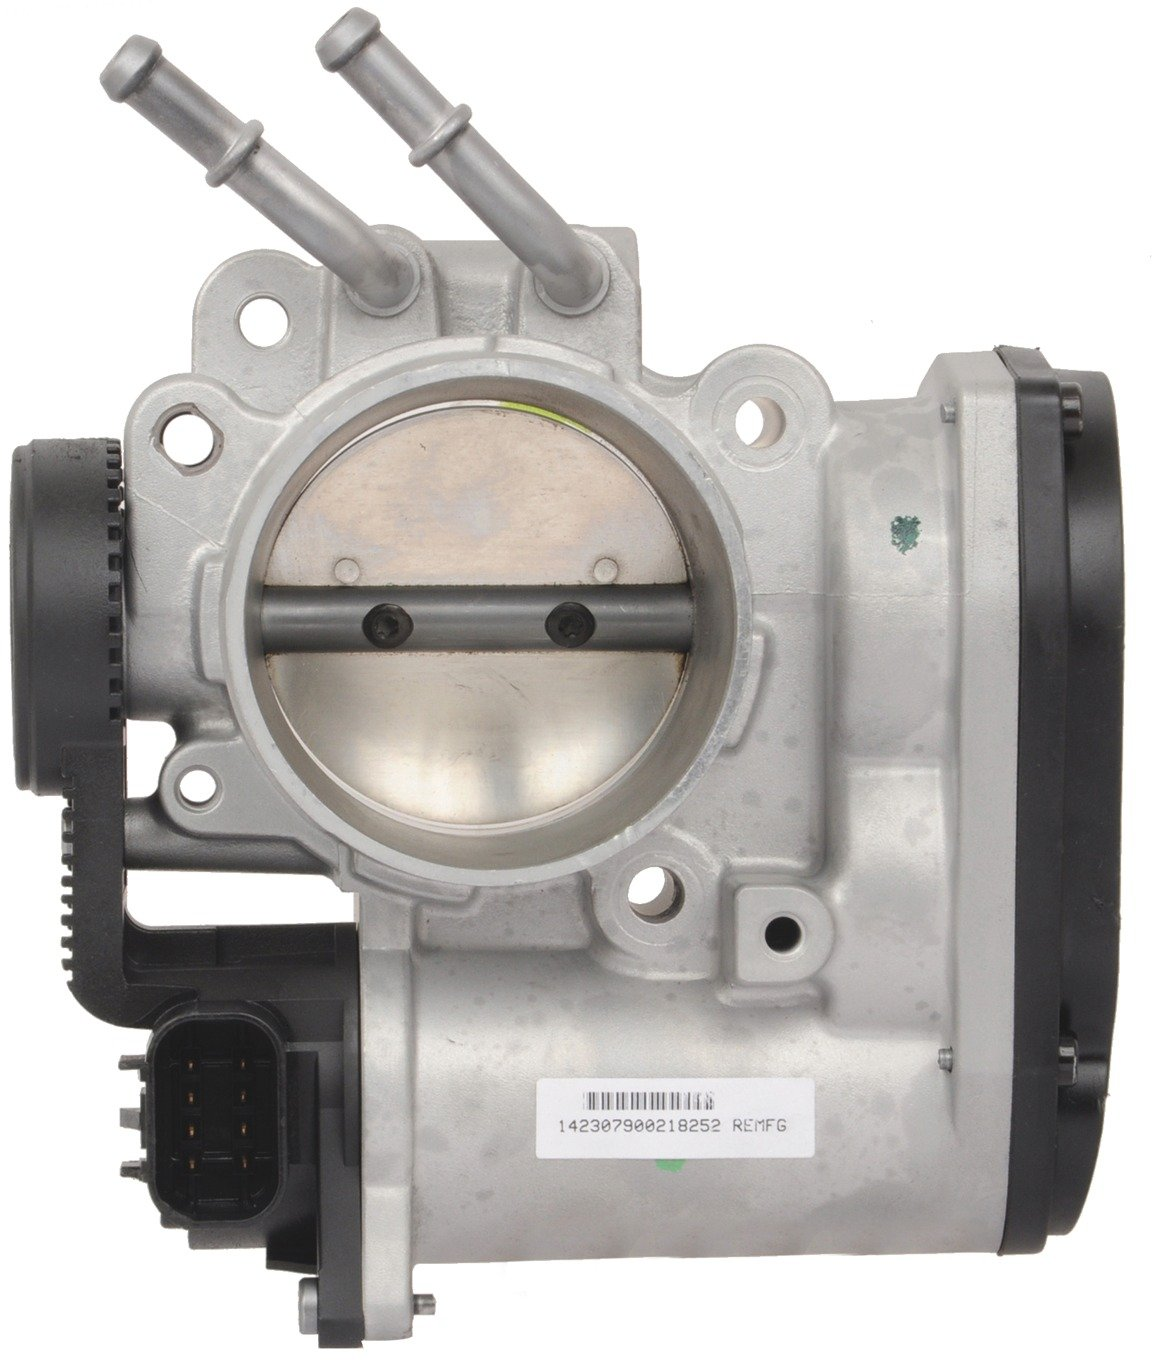 A1 Cardone 67-9002 Electronic Throttle Body (Remanufactured Hyundai Tks/Kia/Kia Tks 10-08)